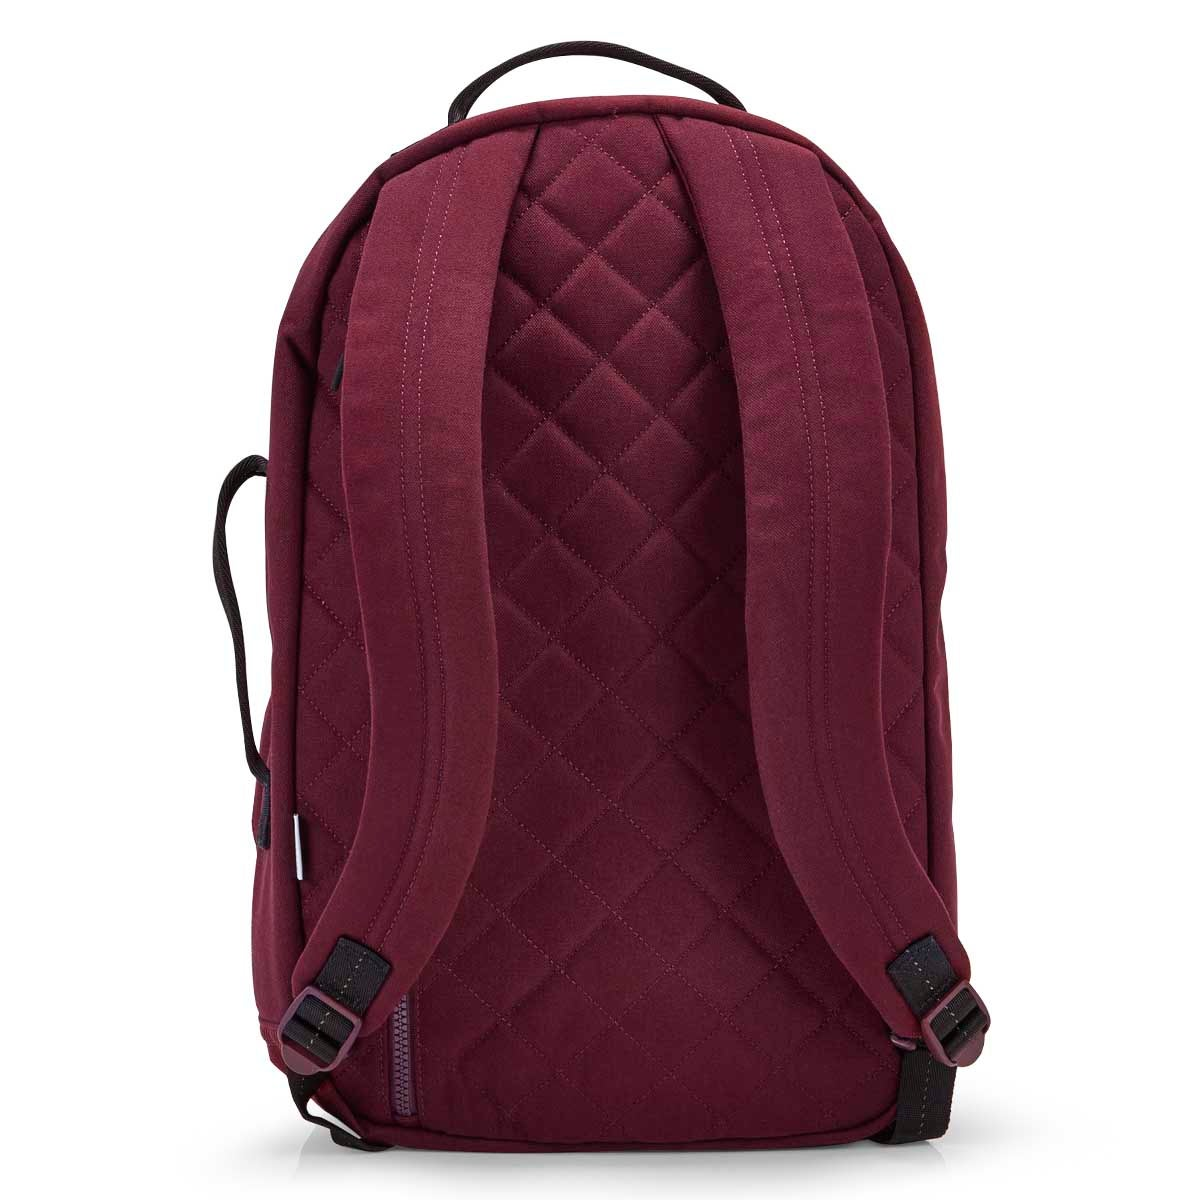 Unisex Essentials sangria cnvs backpack